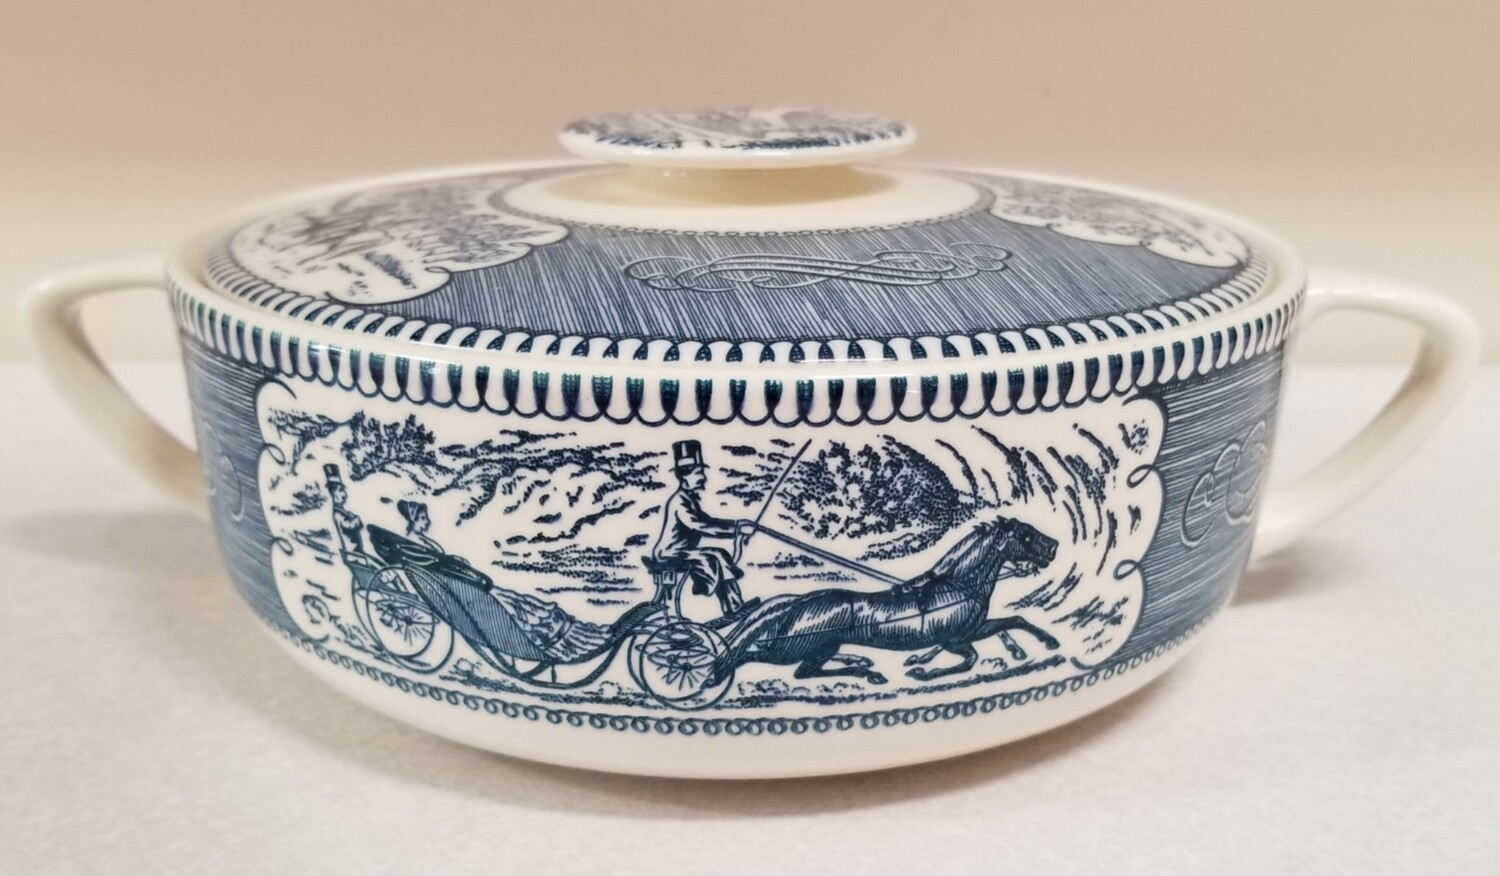 #1-1222 Currier & Ives Round Covered Casserole Dish by Royal China